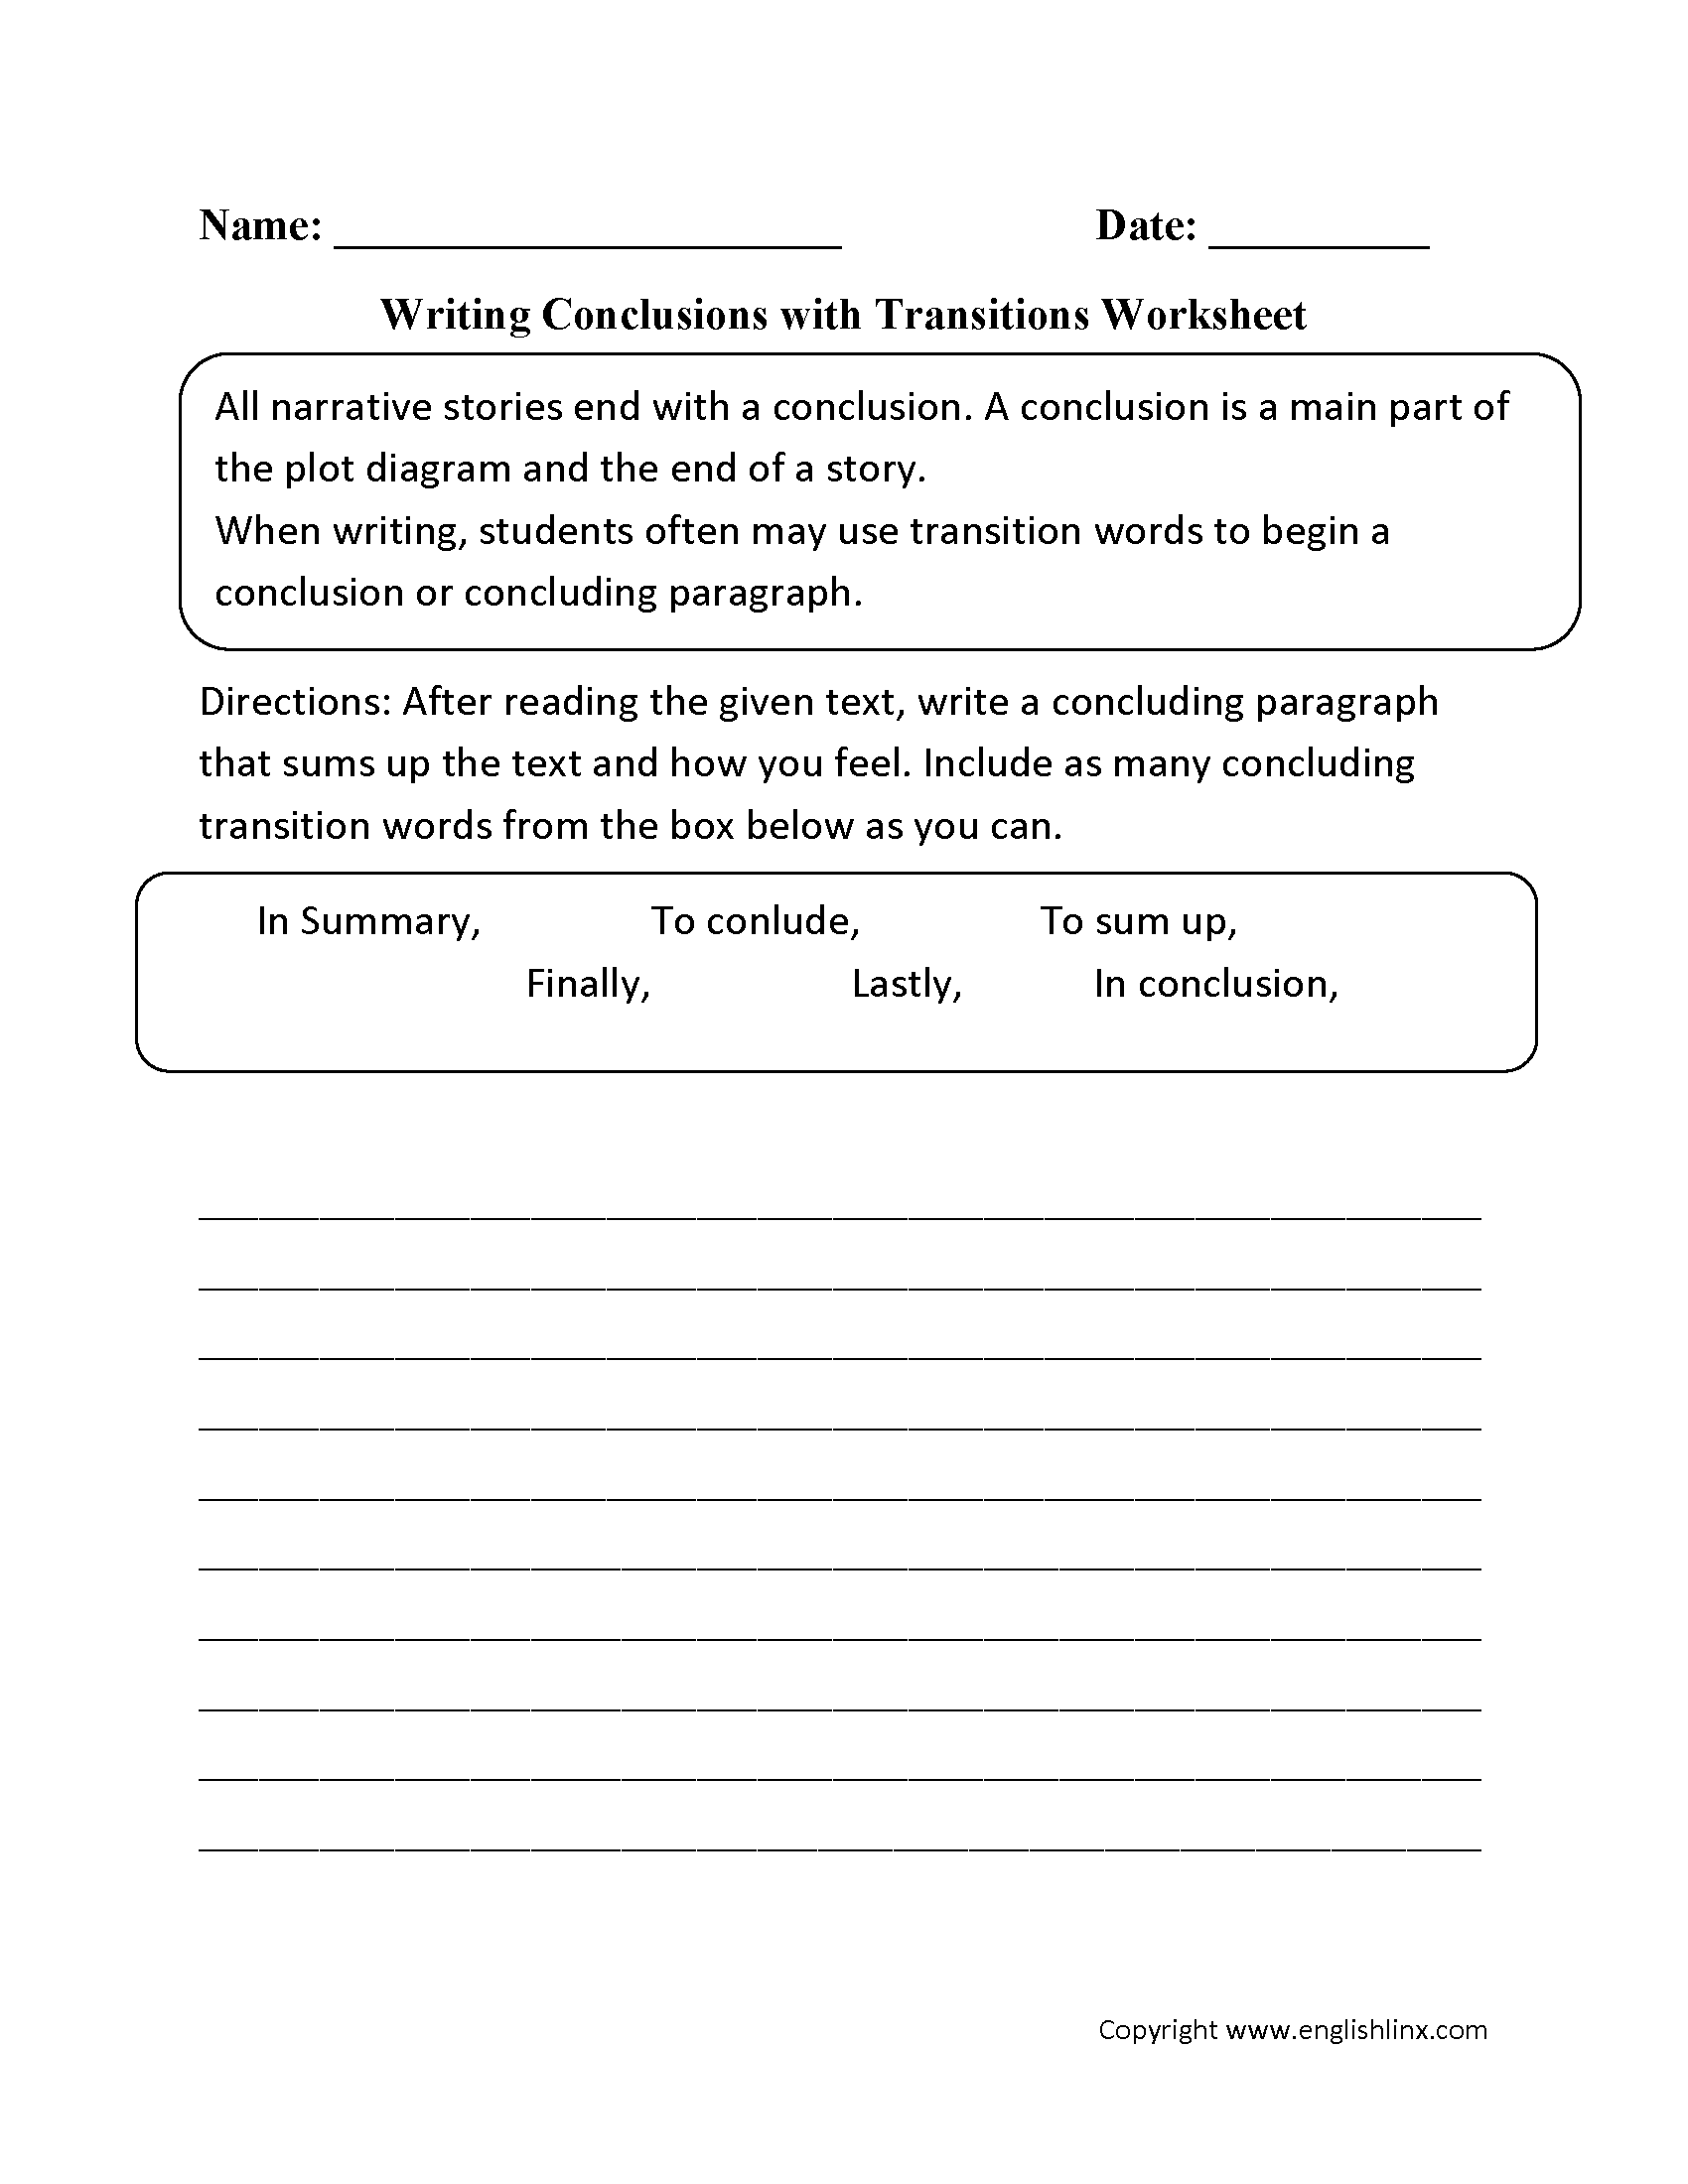 Writing Conclusions Worksheets | Writing Conclusions with ...